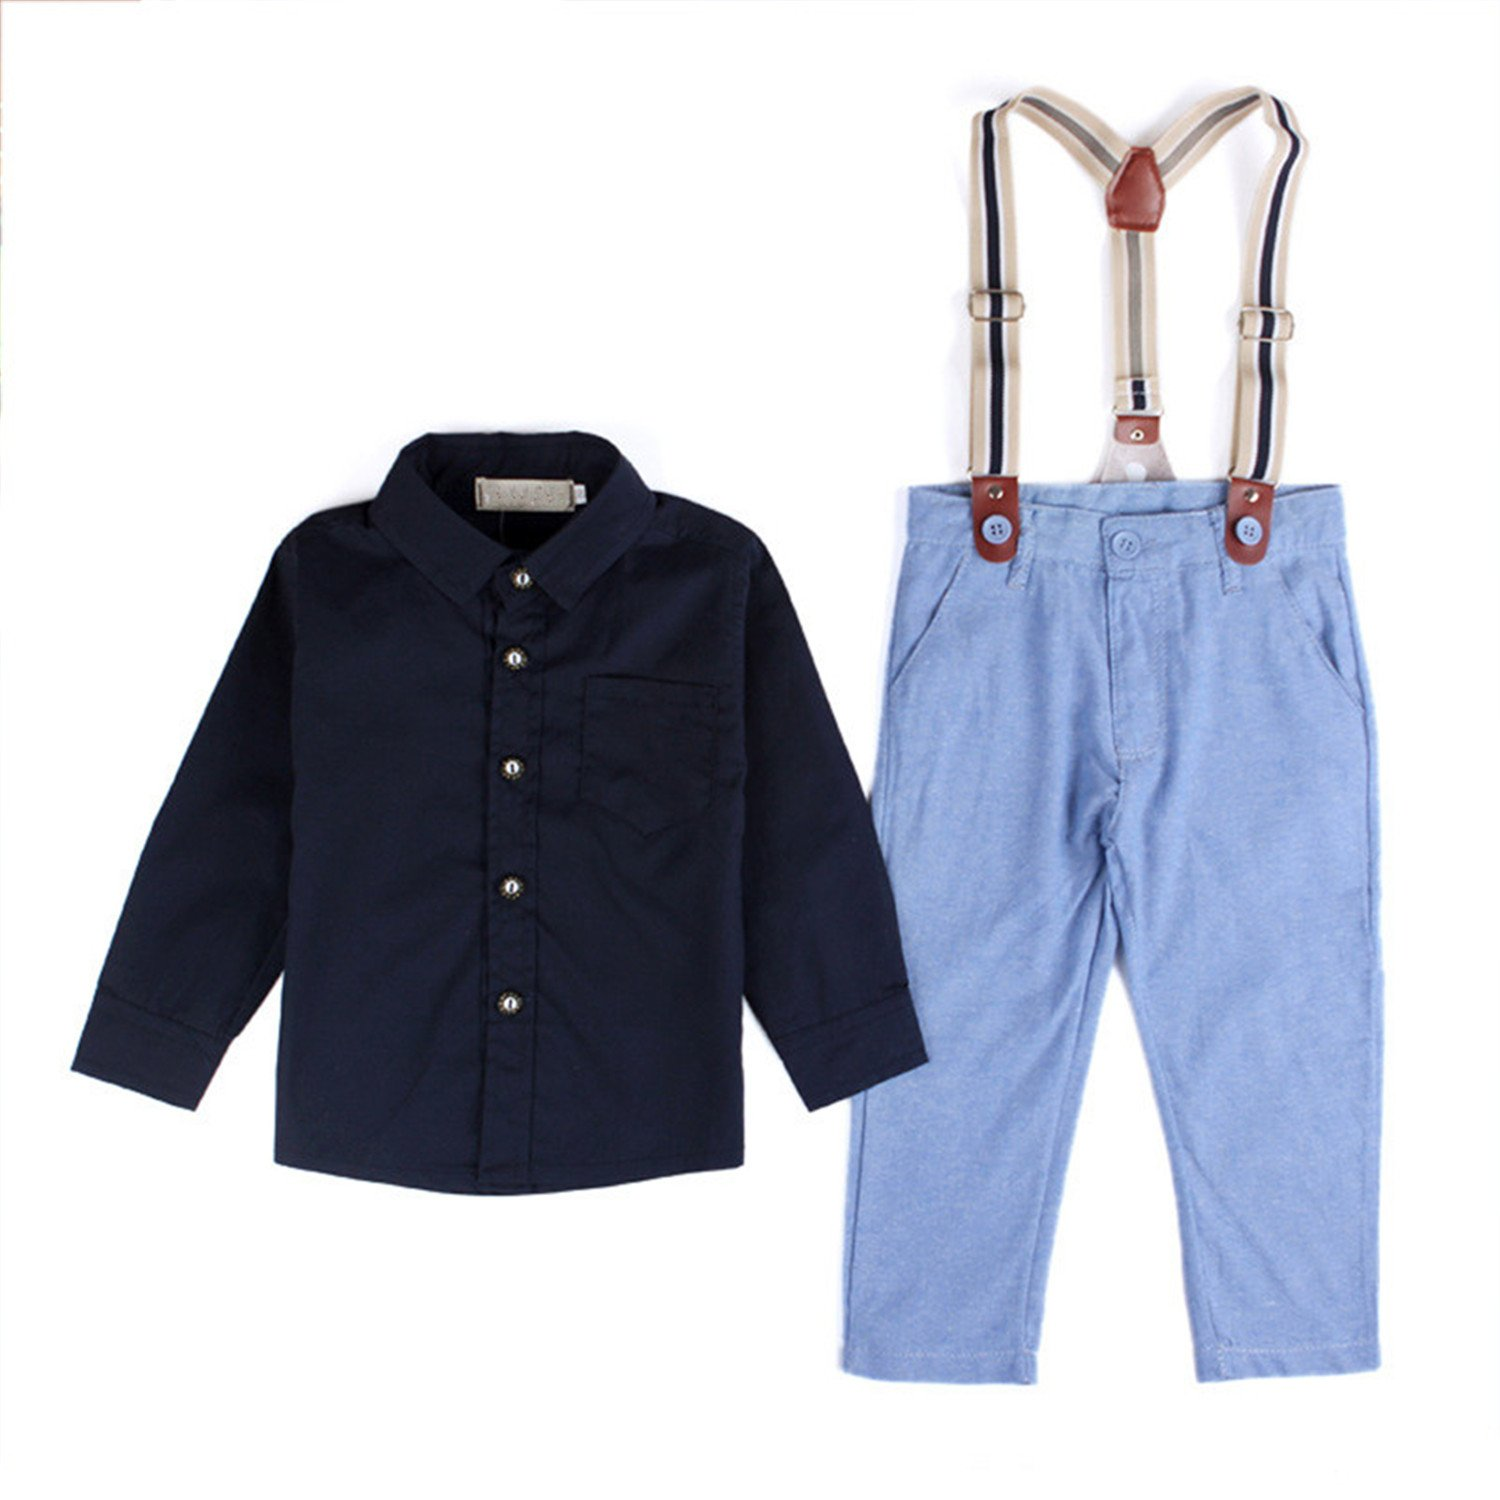 Hoared Black Shirt+ Sling Strap Jean Pants Clothing Button Suit Child Wedding Suits Fashion Overalls Overall 2T